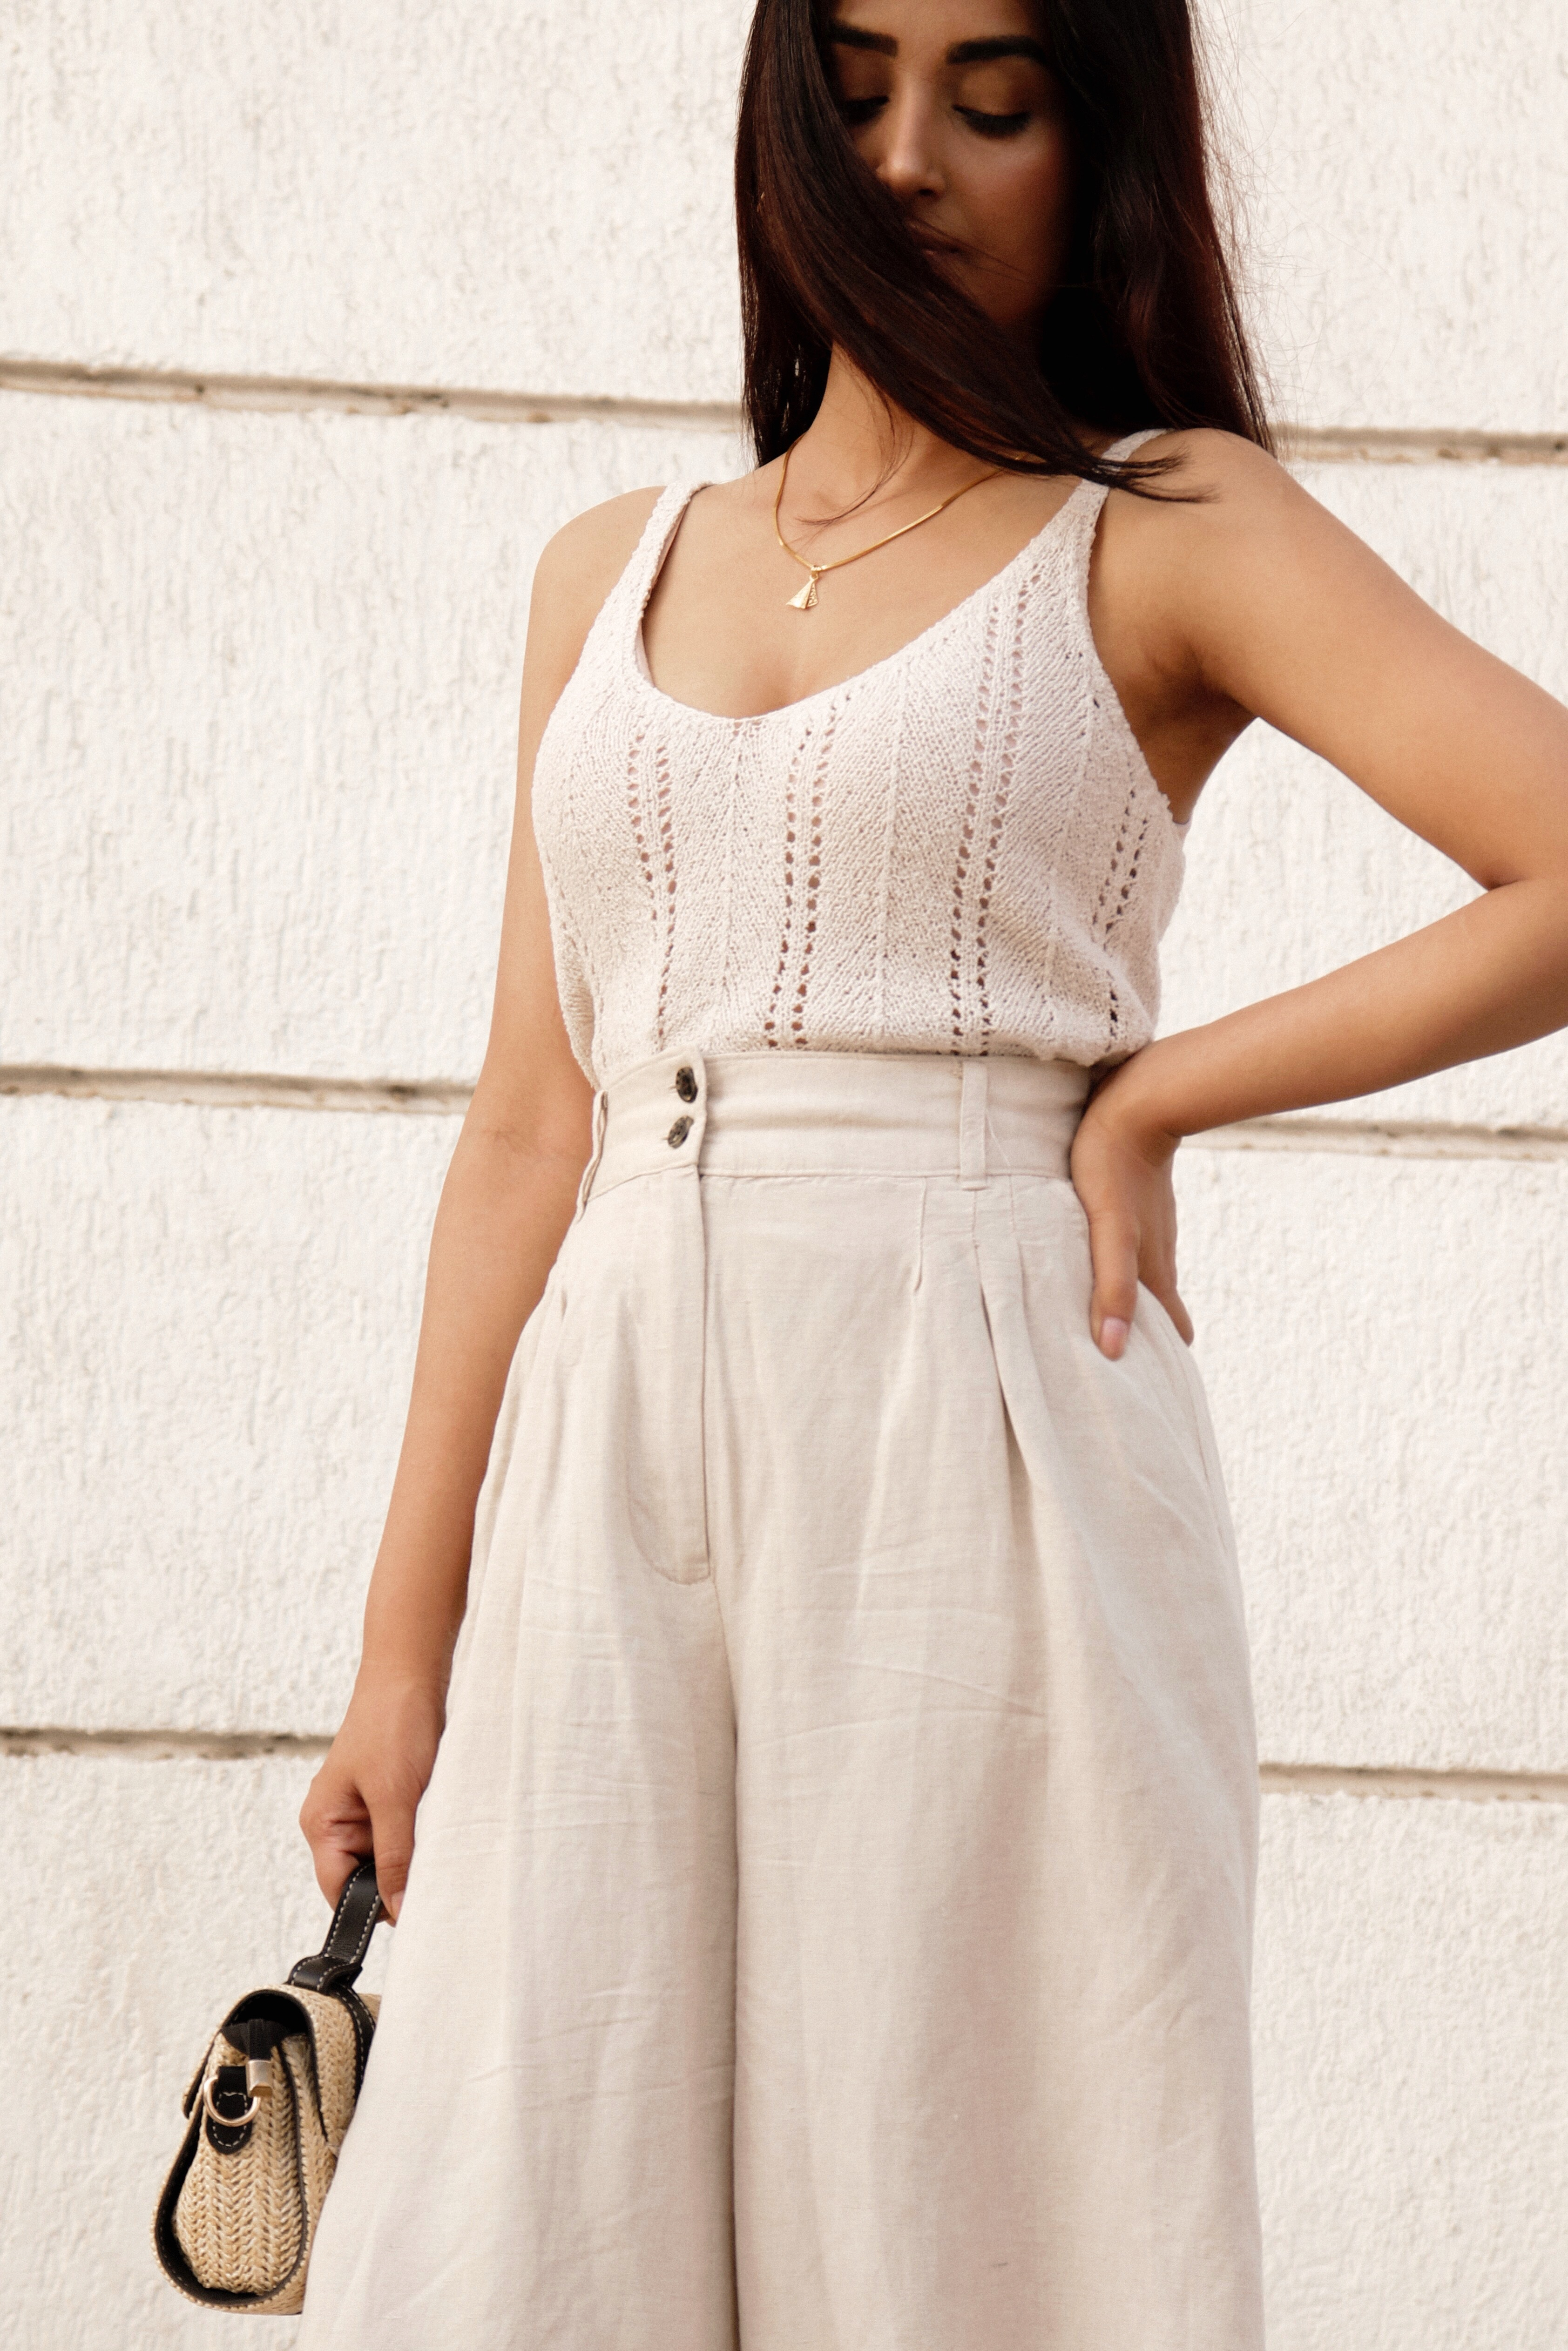 MONOCHROME OUTFIT WITH NEUTRALS - Prity Singh | Gold Hoops